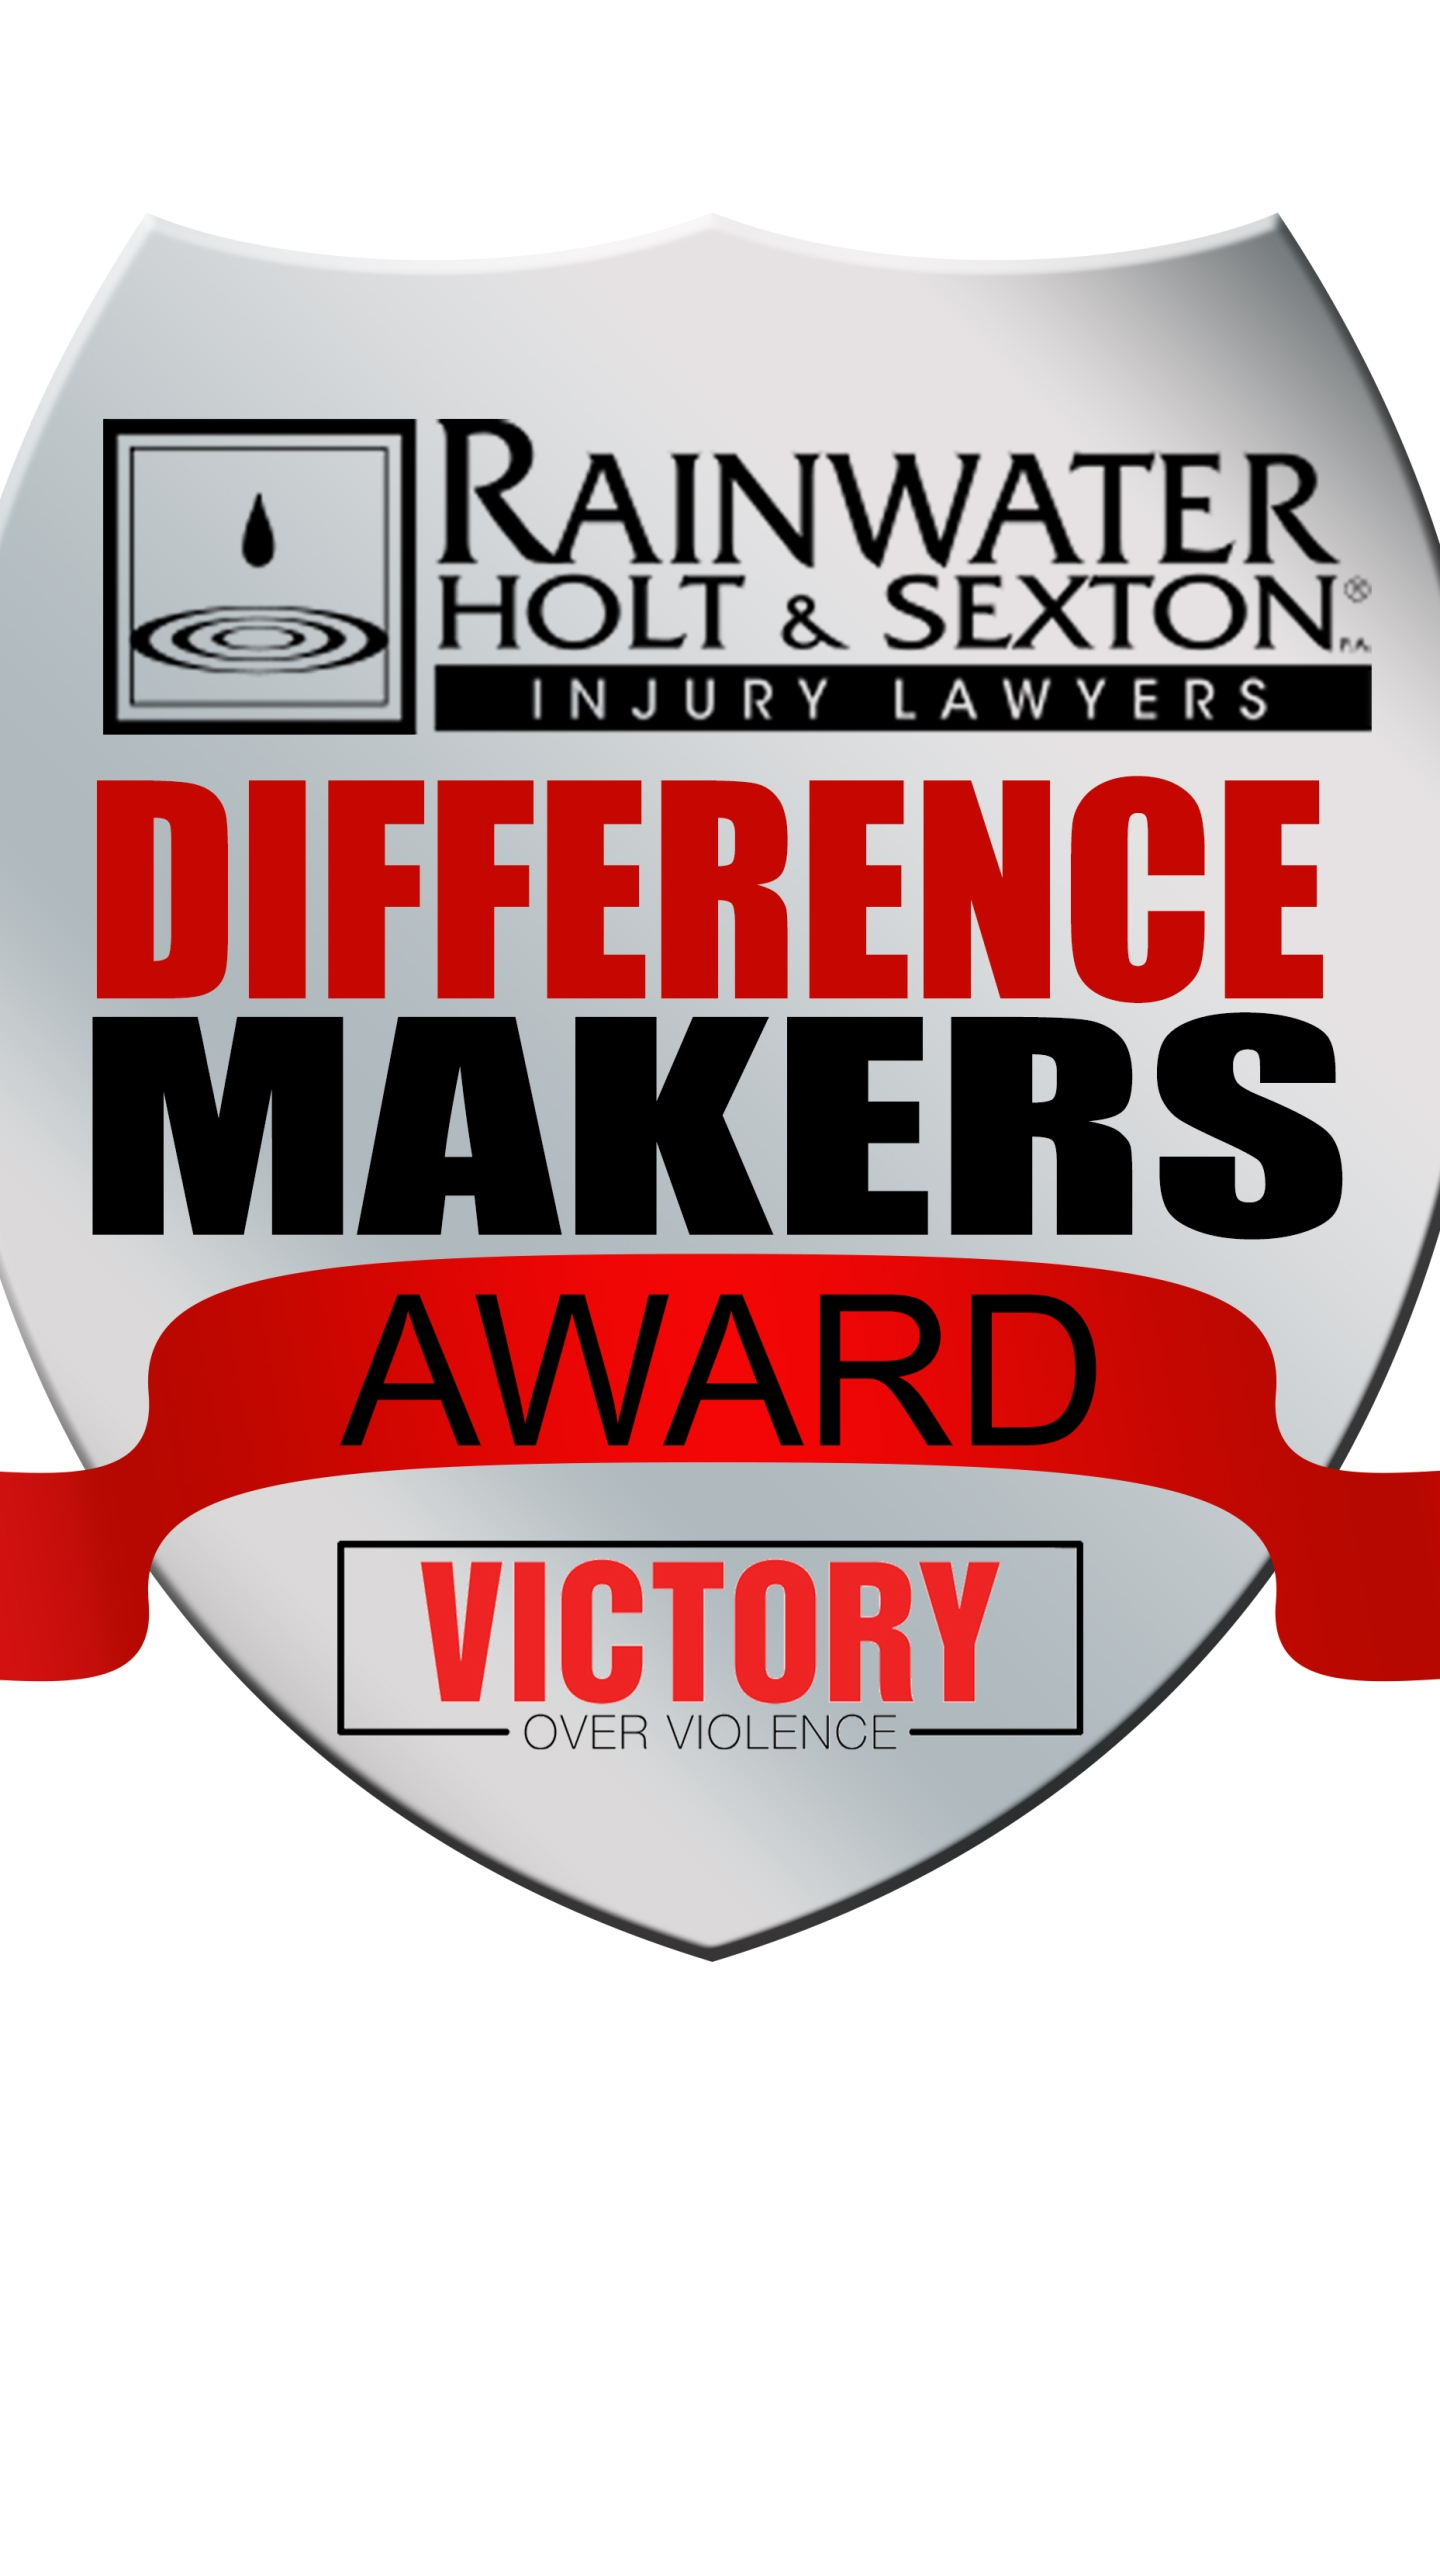 DifferenceMakers_1497625006923.jpg